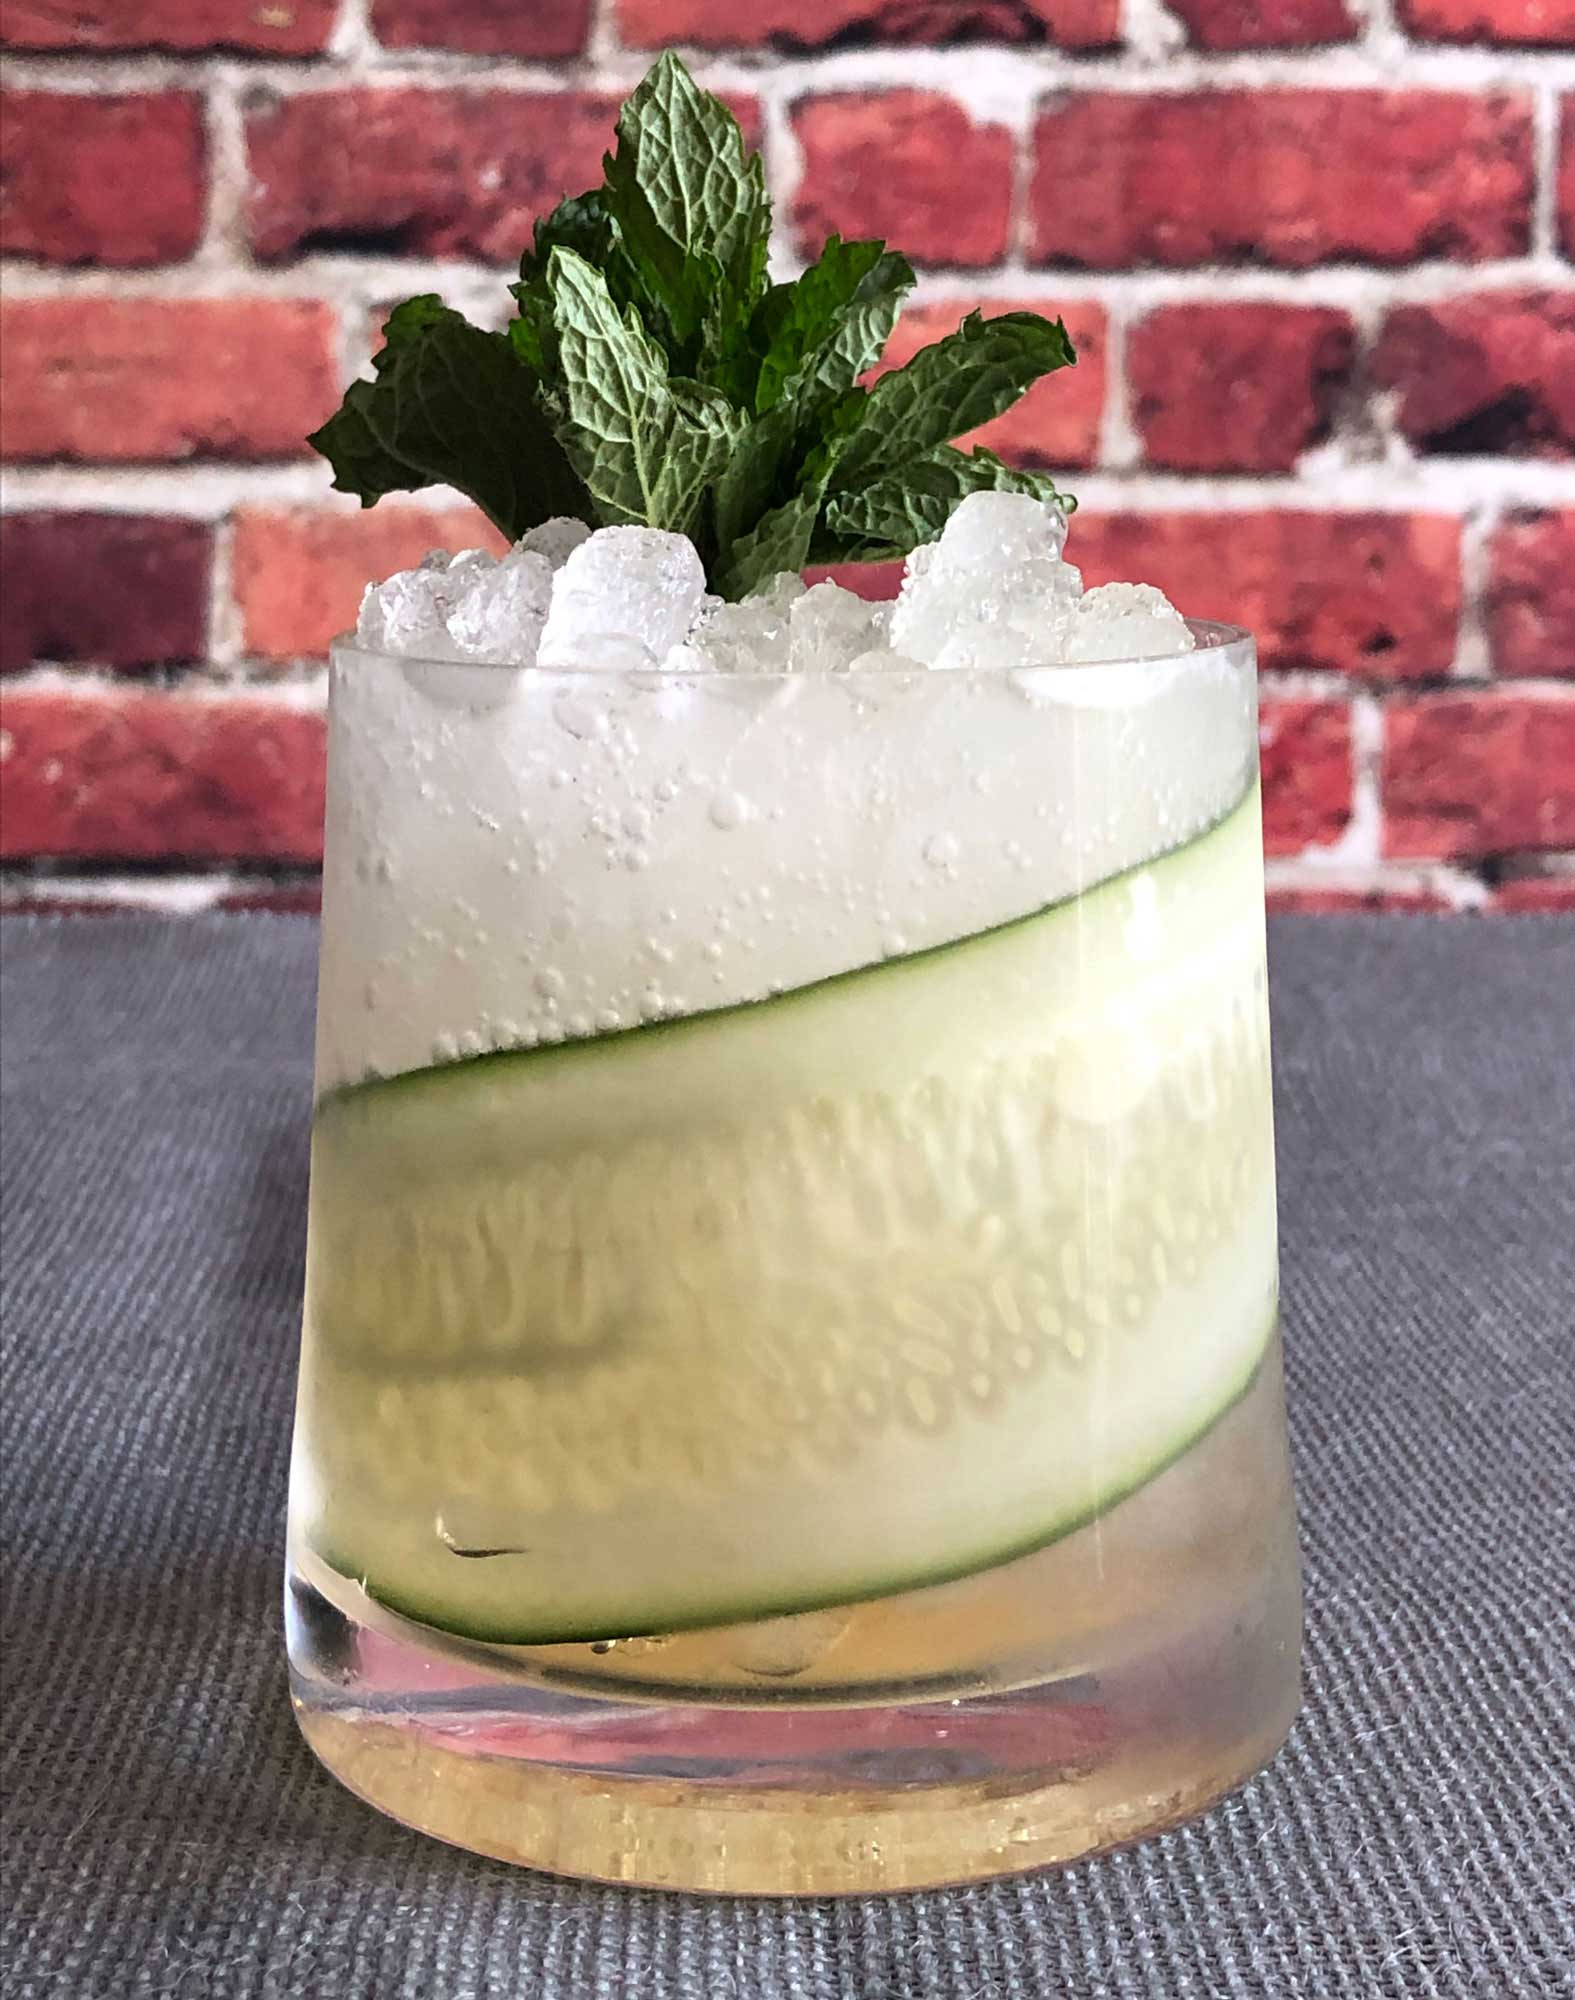 An example of the Capri Classic, the mixed drink (cocktail), by Macchialina, Miami Beach, Florida, featuring Cocchi Americano Bianco, and soda water; photo by Lee Edwards